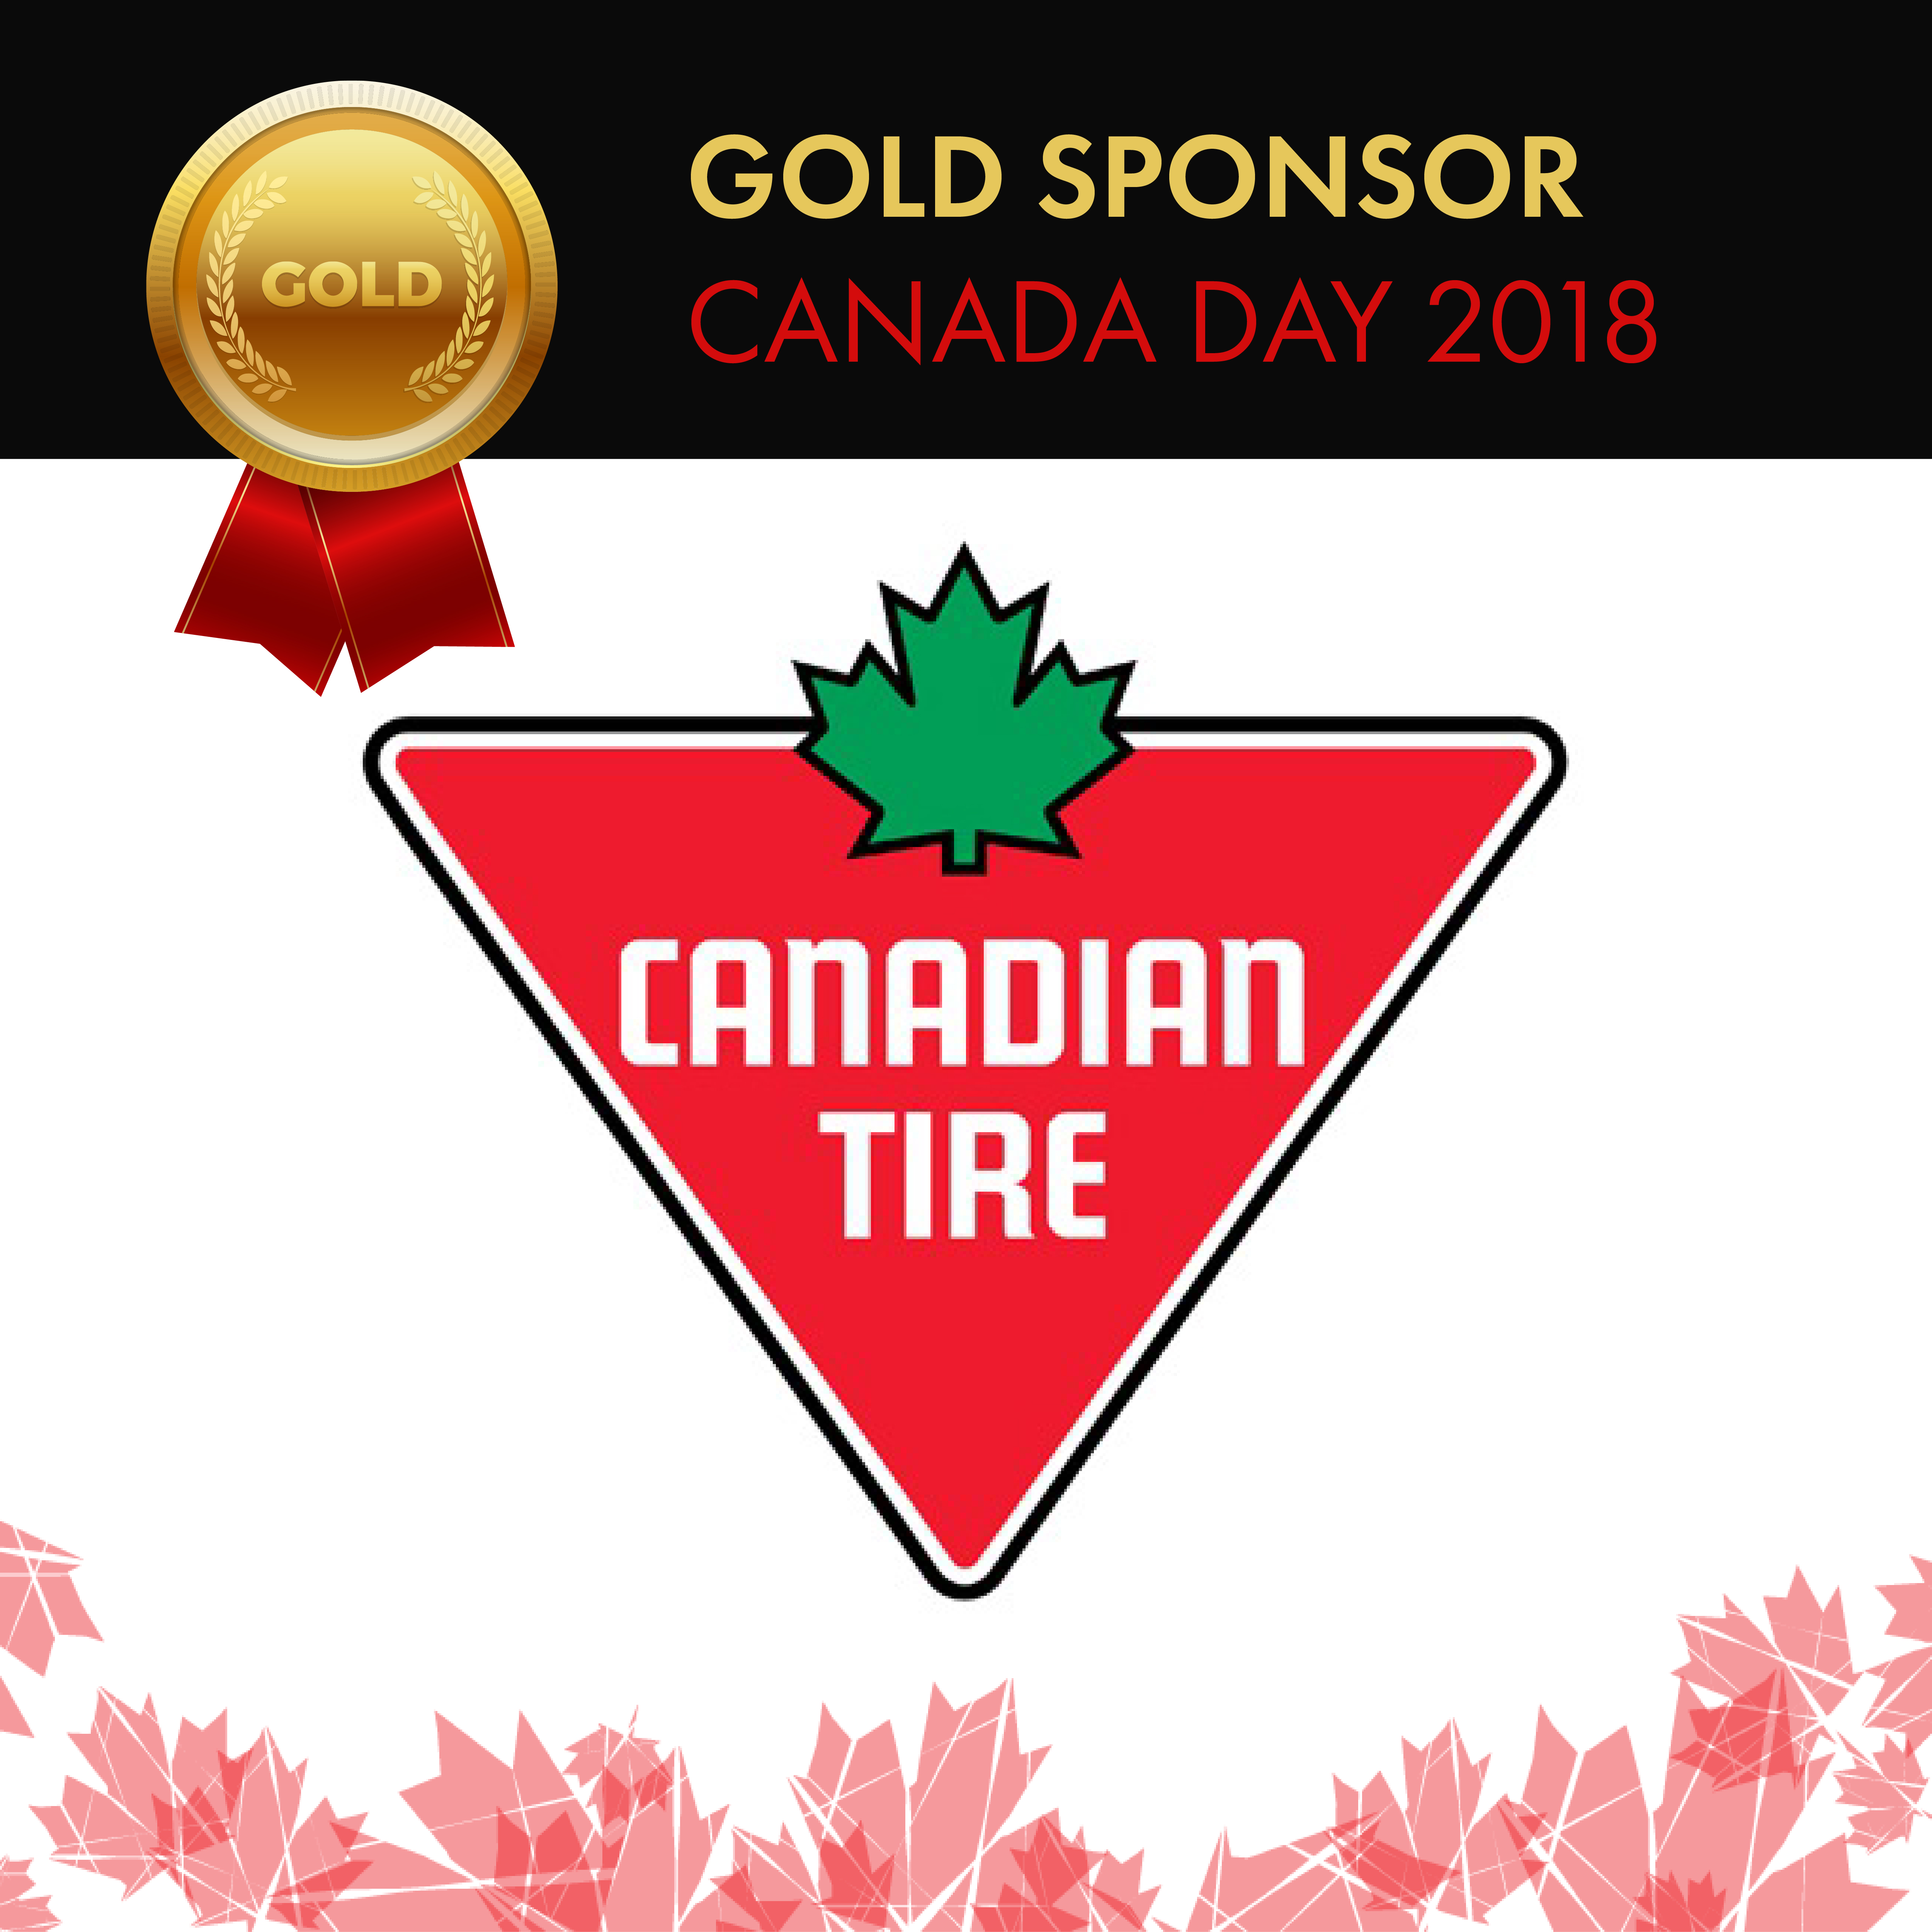 Gold Sponsor Ad - Canadian Tire-01.jpg